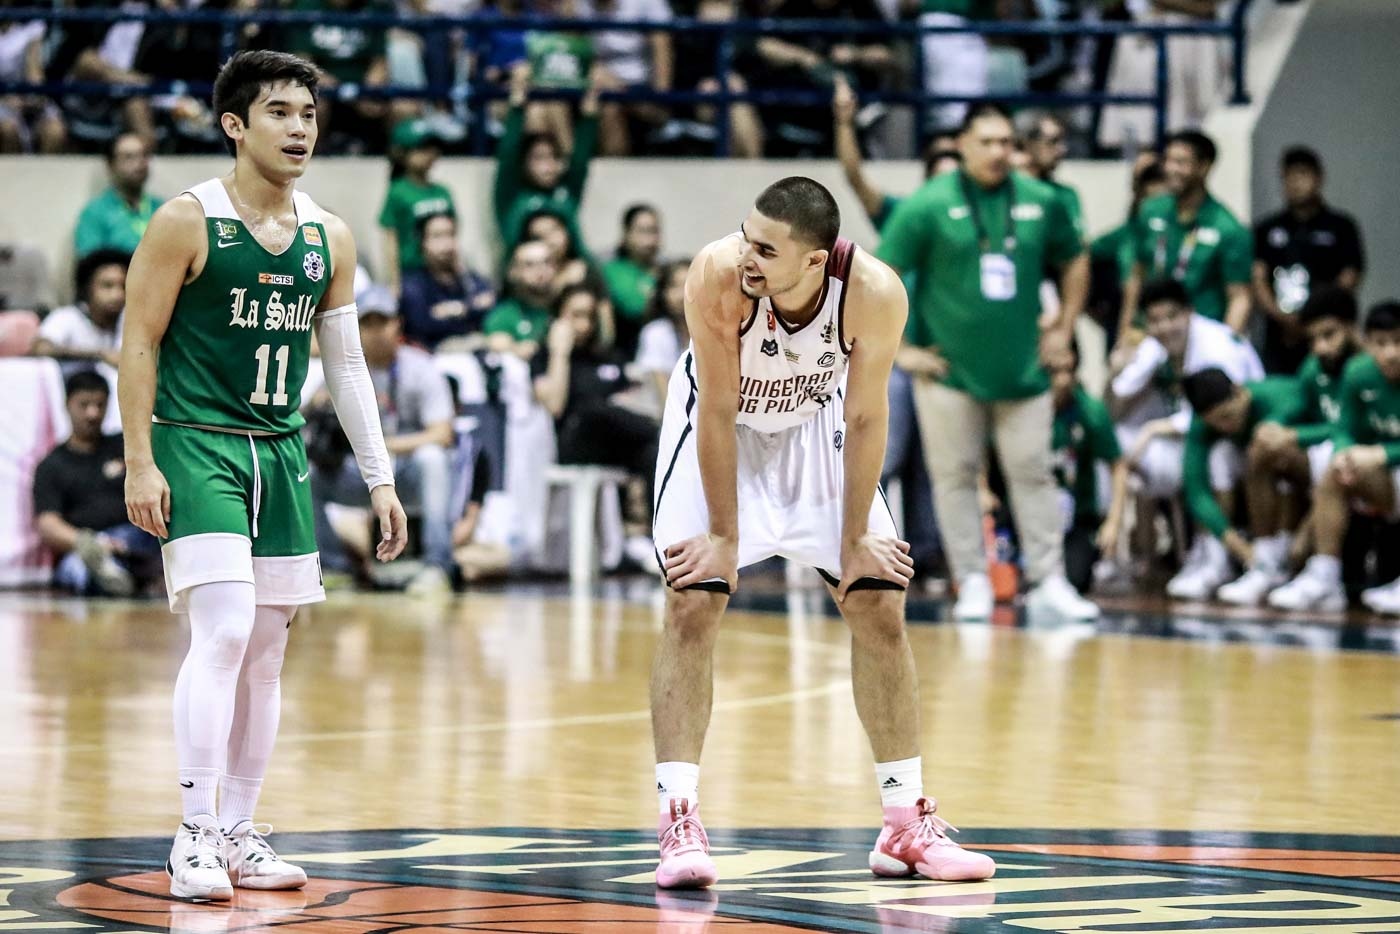 CRUNCH TIME. UP stalwart Kobe Paras and La Salle standout Aljun Melecio go at in the final stretch. Photo by Michael Gatpandan/Rappler